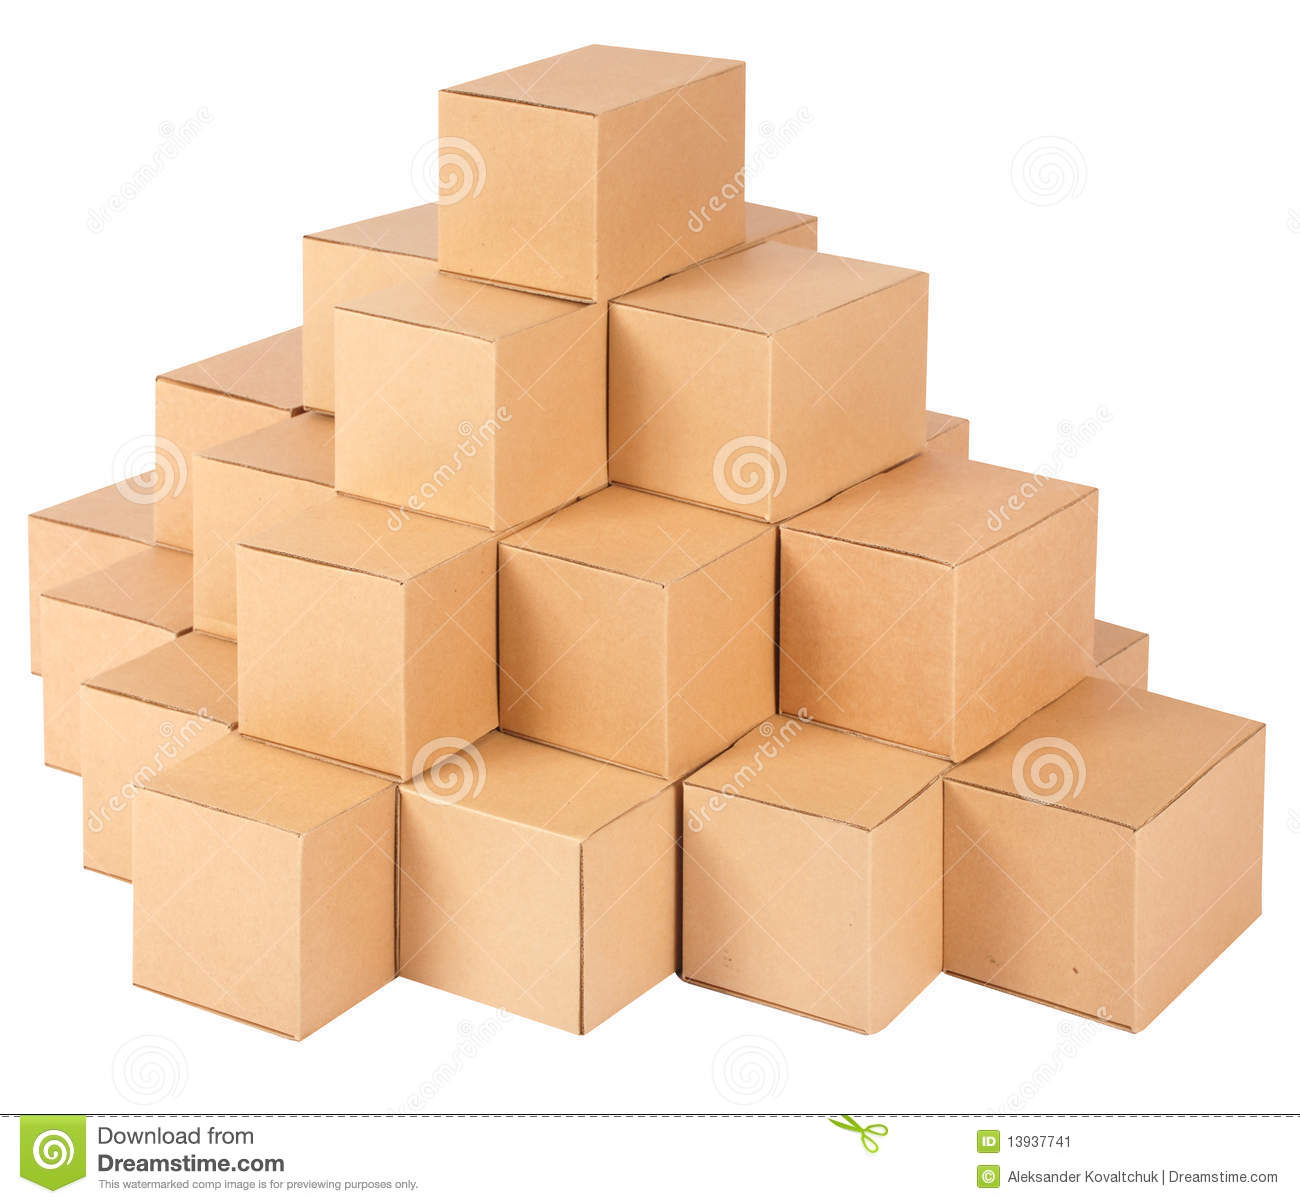 Cardboard Boxes.Pyramid From Boxes Stock Image - Image: 13937741